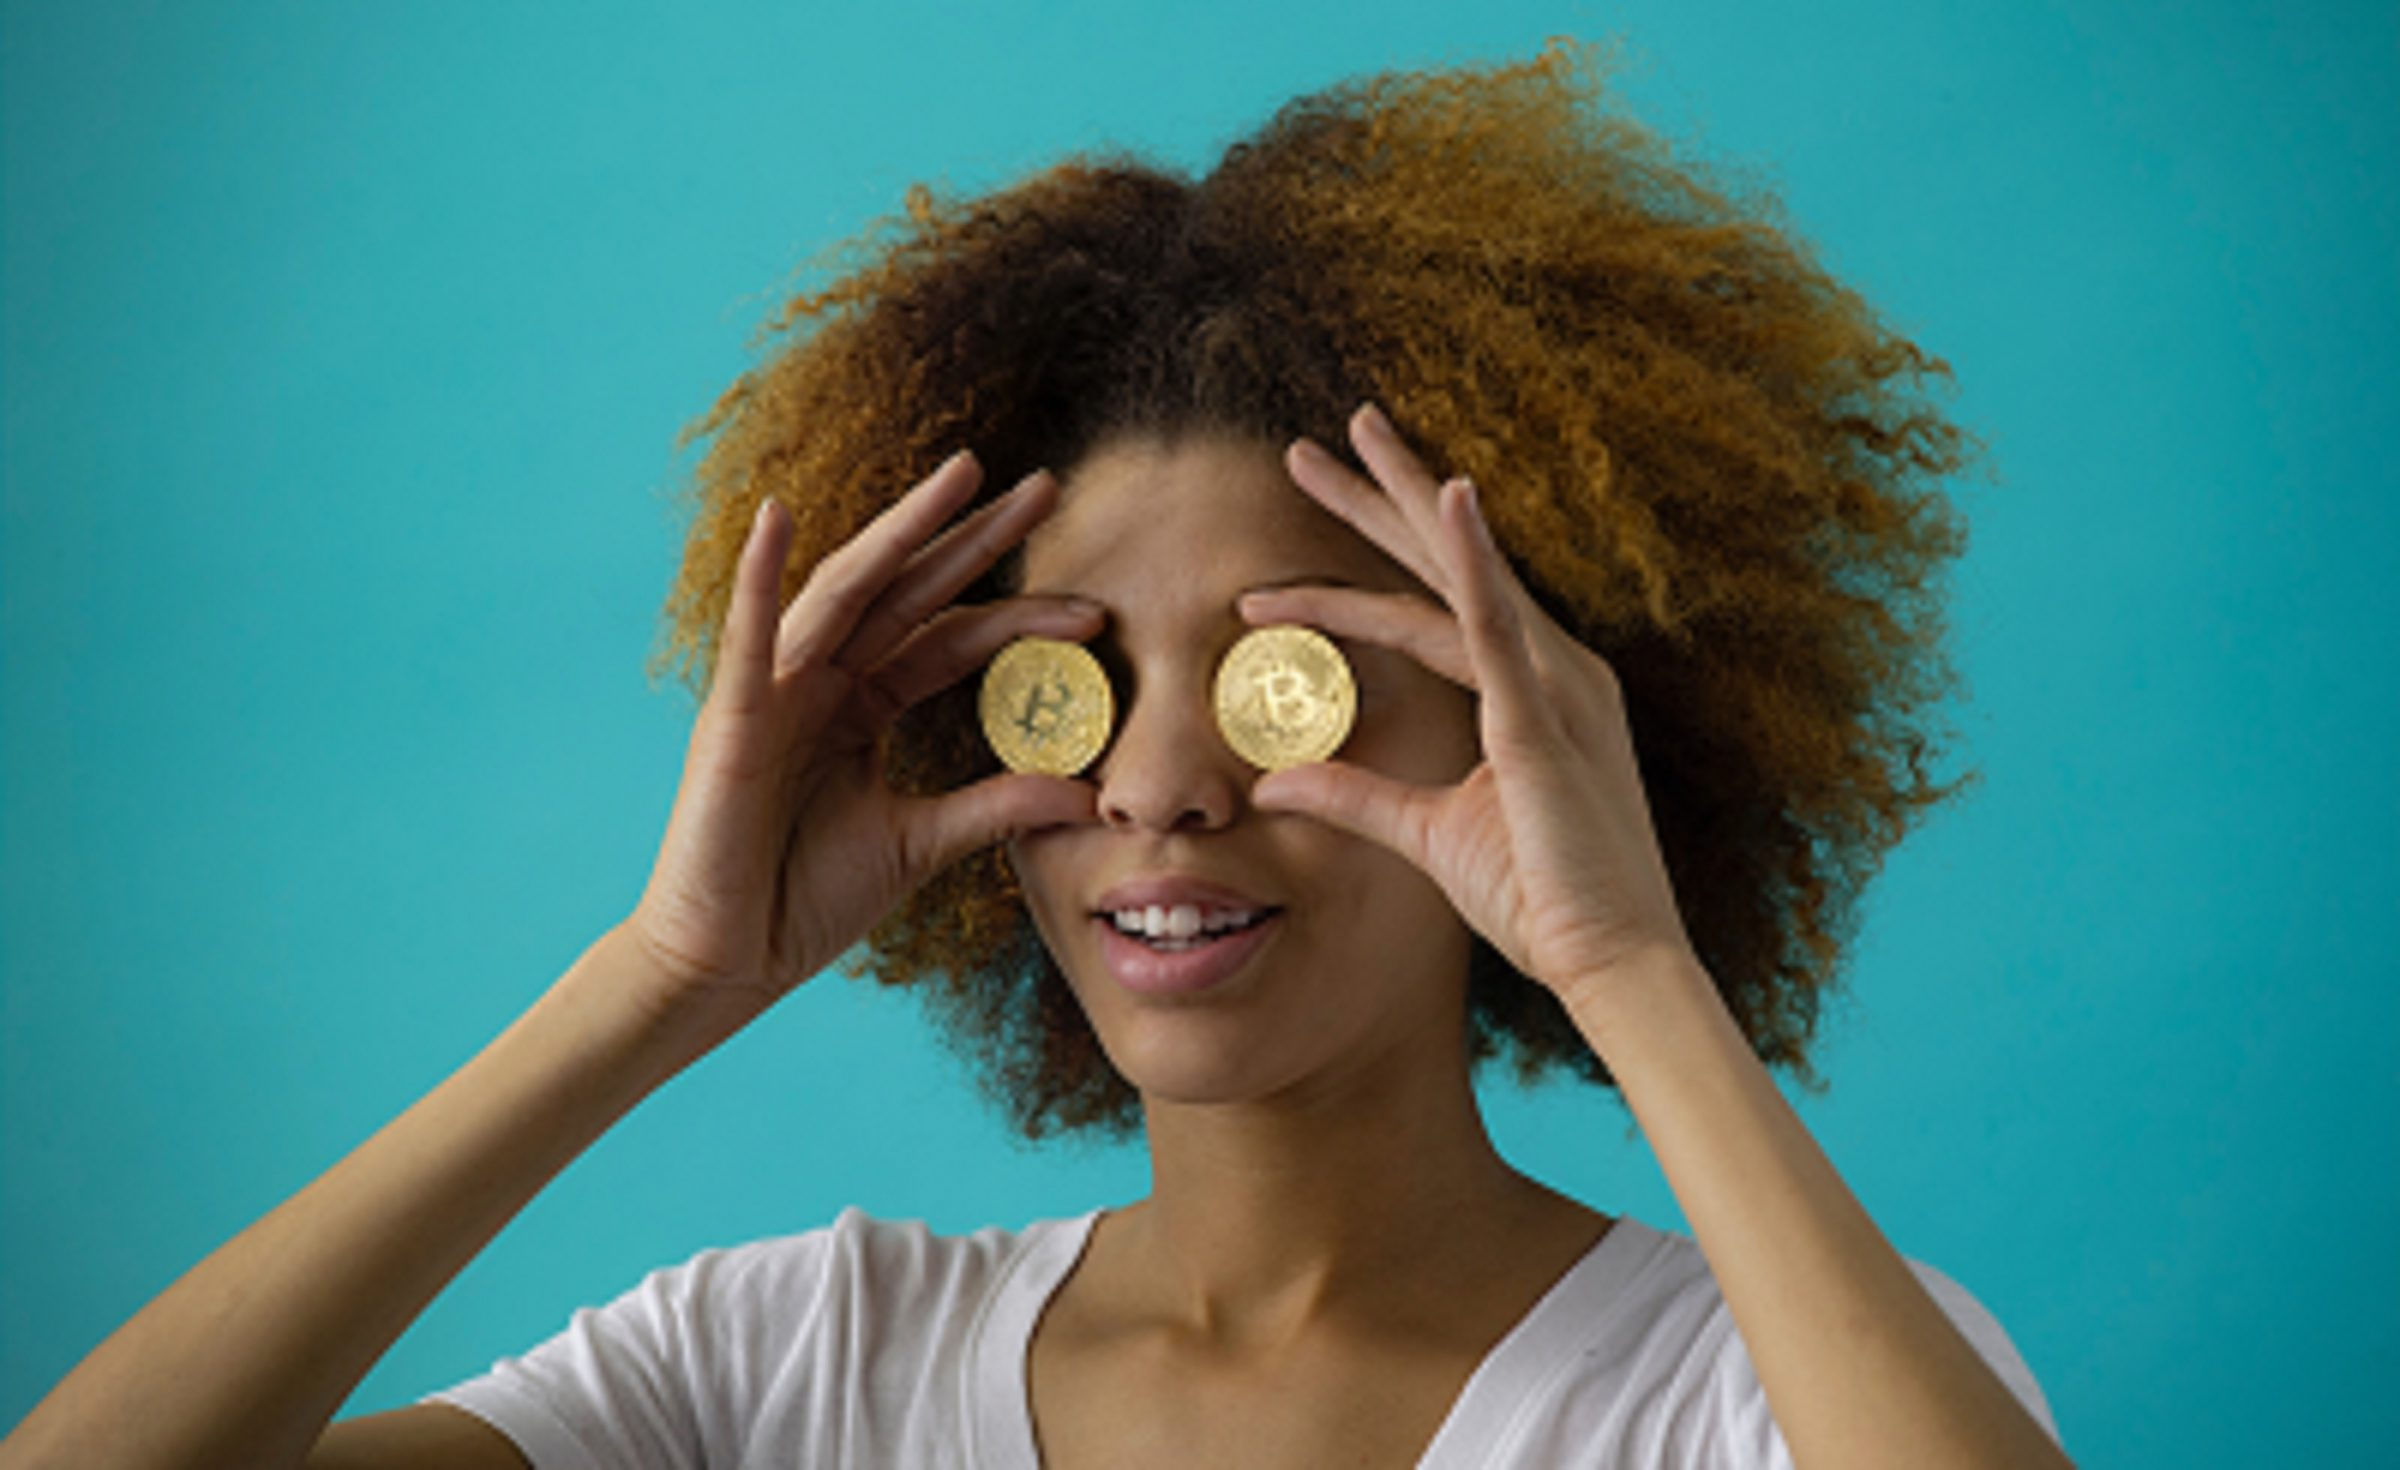 woman with coin eyes